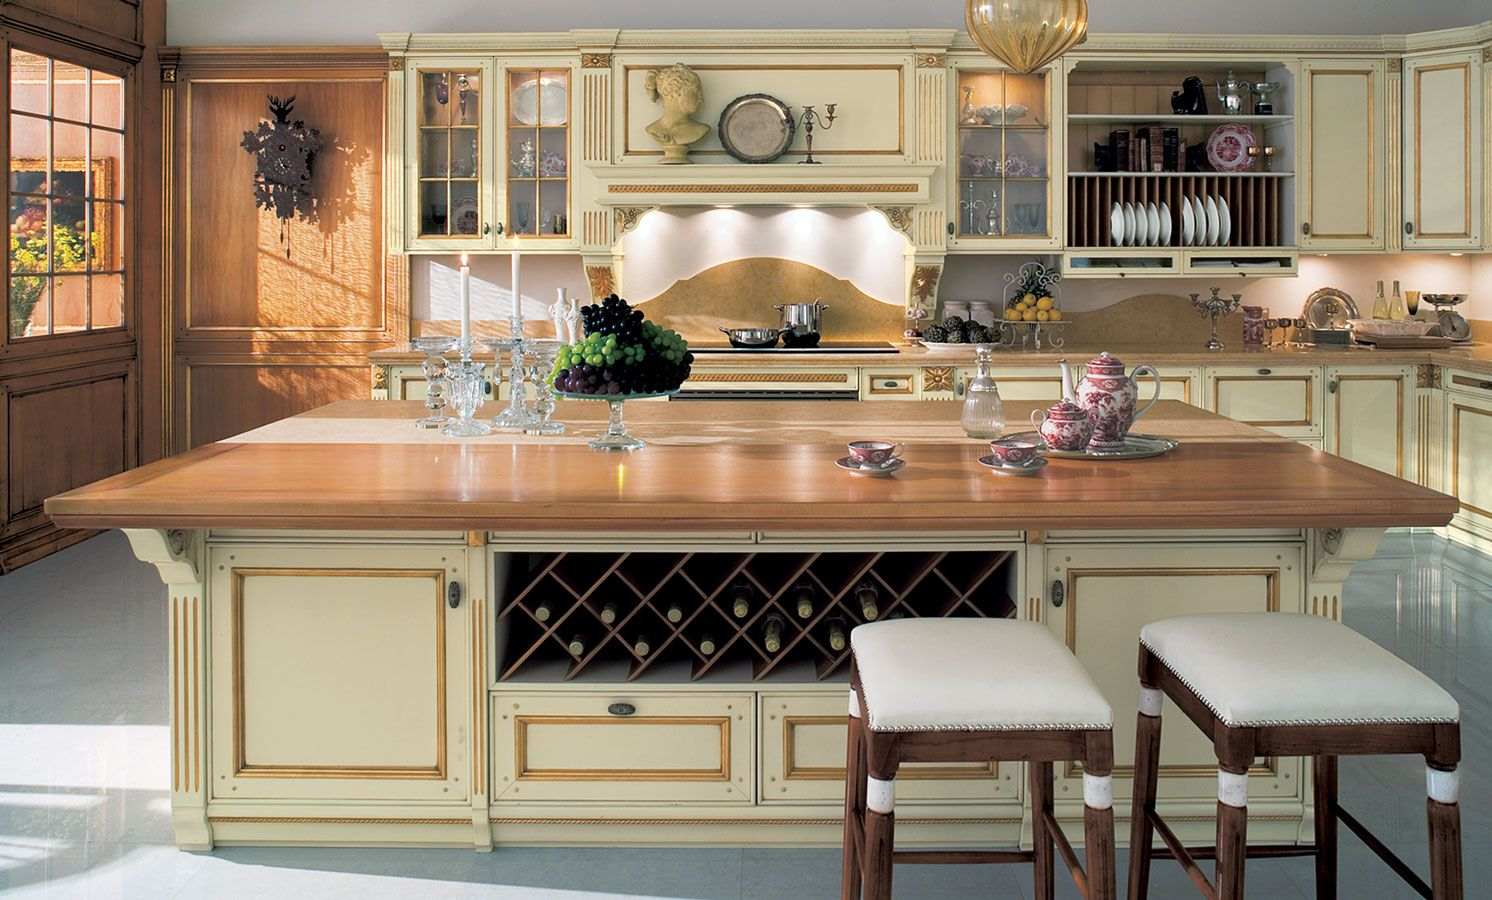 Italian classic kitchen design Give us a call today at 860 331